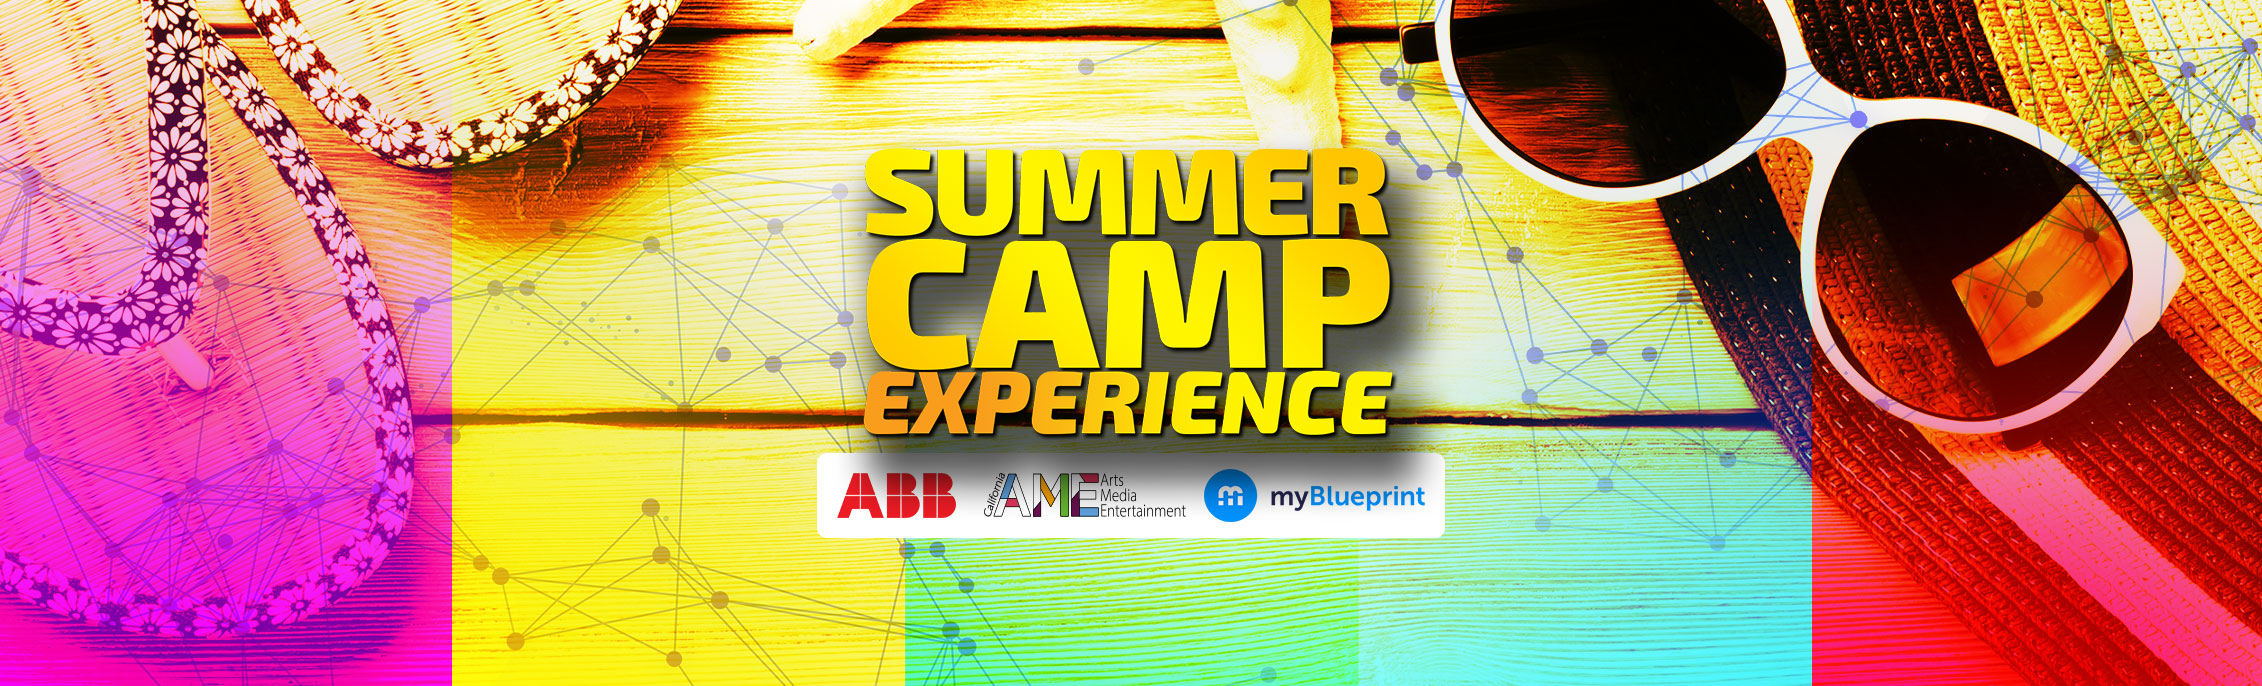 Edge Factor Summer Camp Experience includes 5 Days of STEAM challenges and prizes to be won.